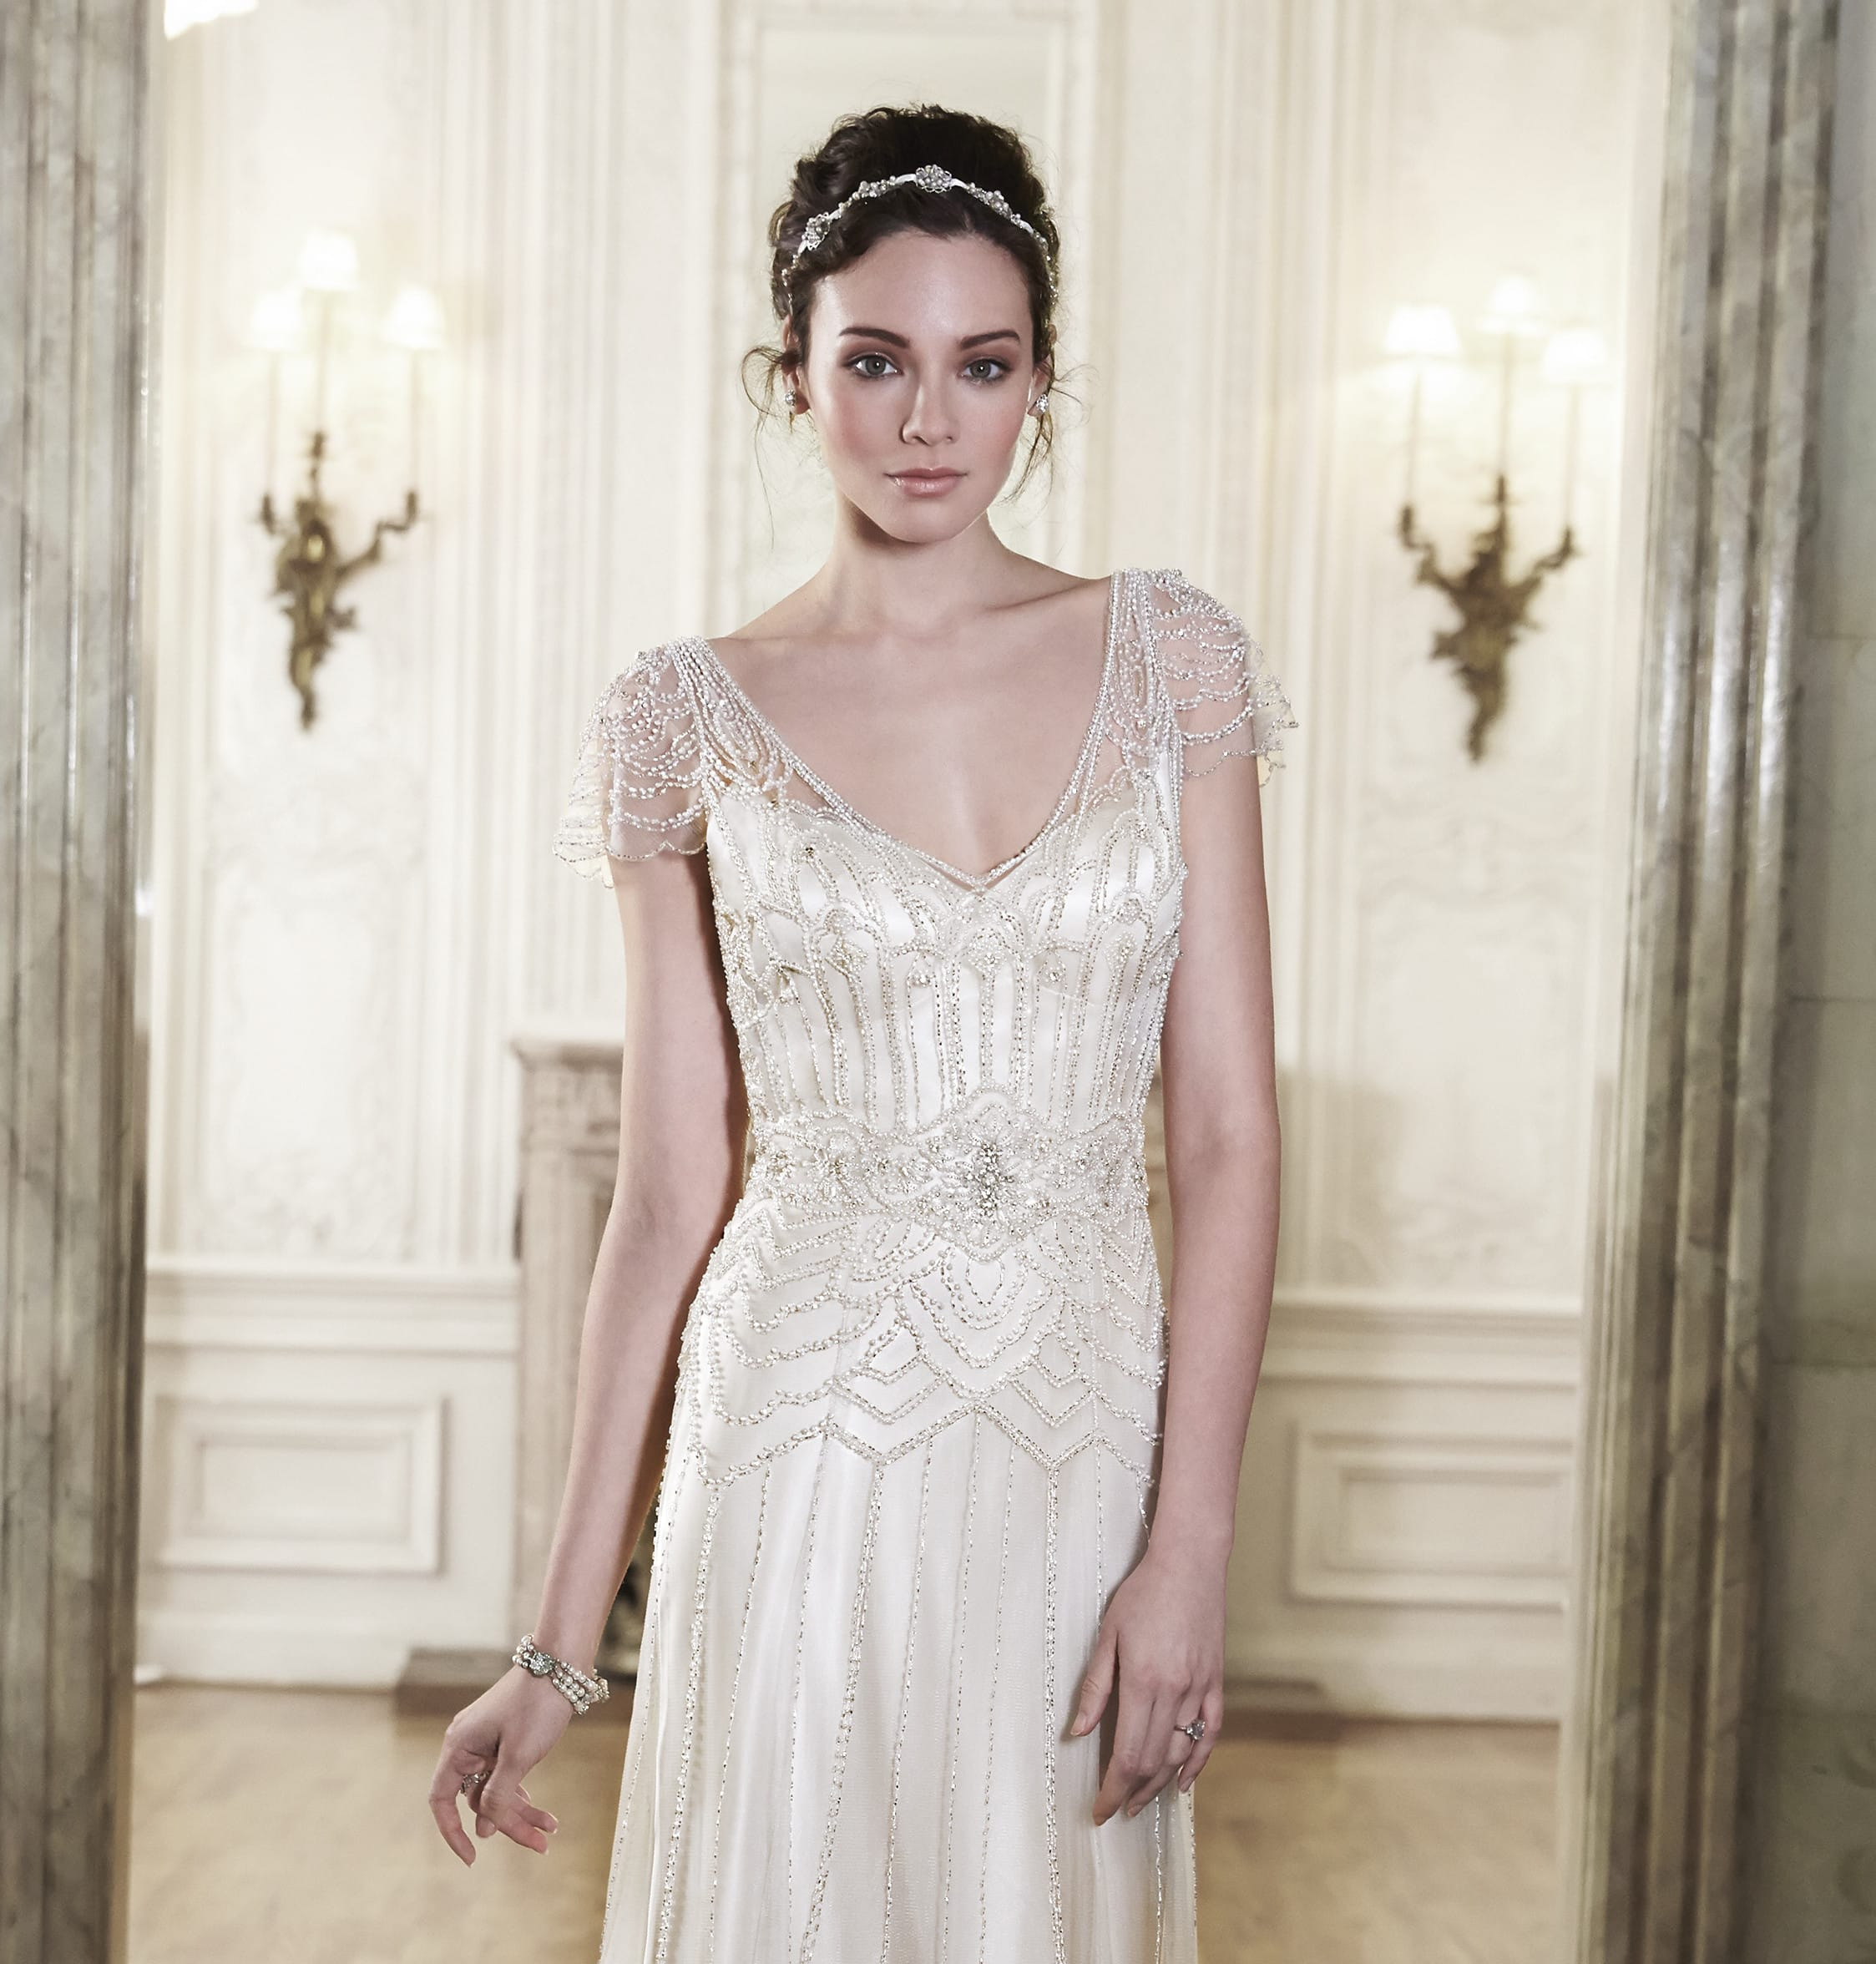 Geliefde Great Gatsby Inspired Wedding Dresses To Fall In Love With : Love #HQ73